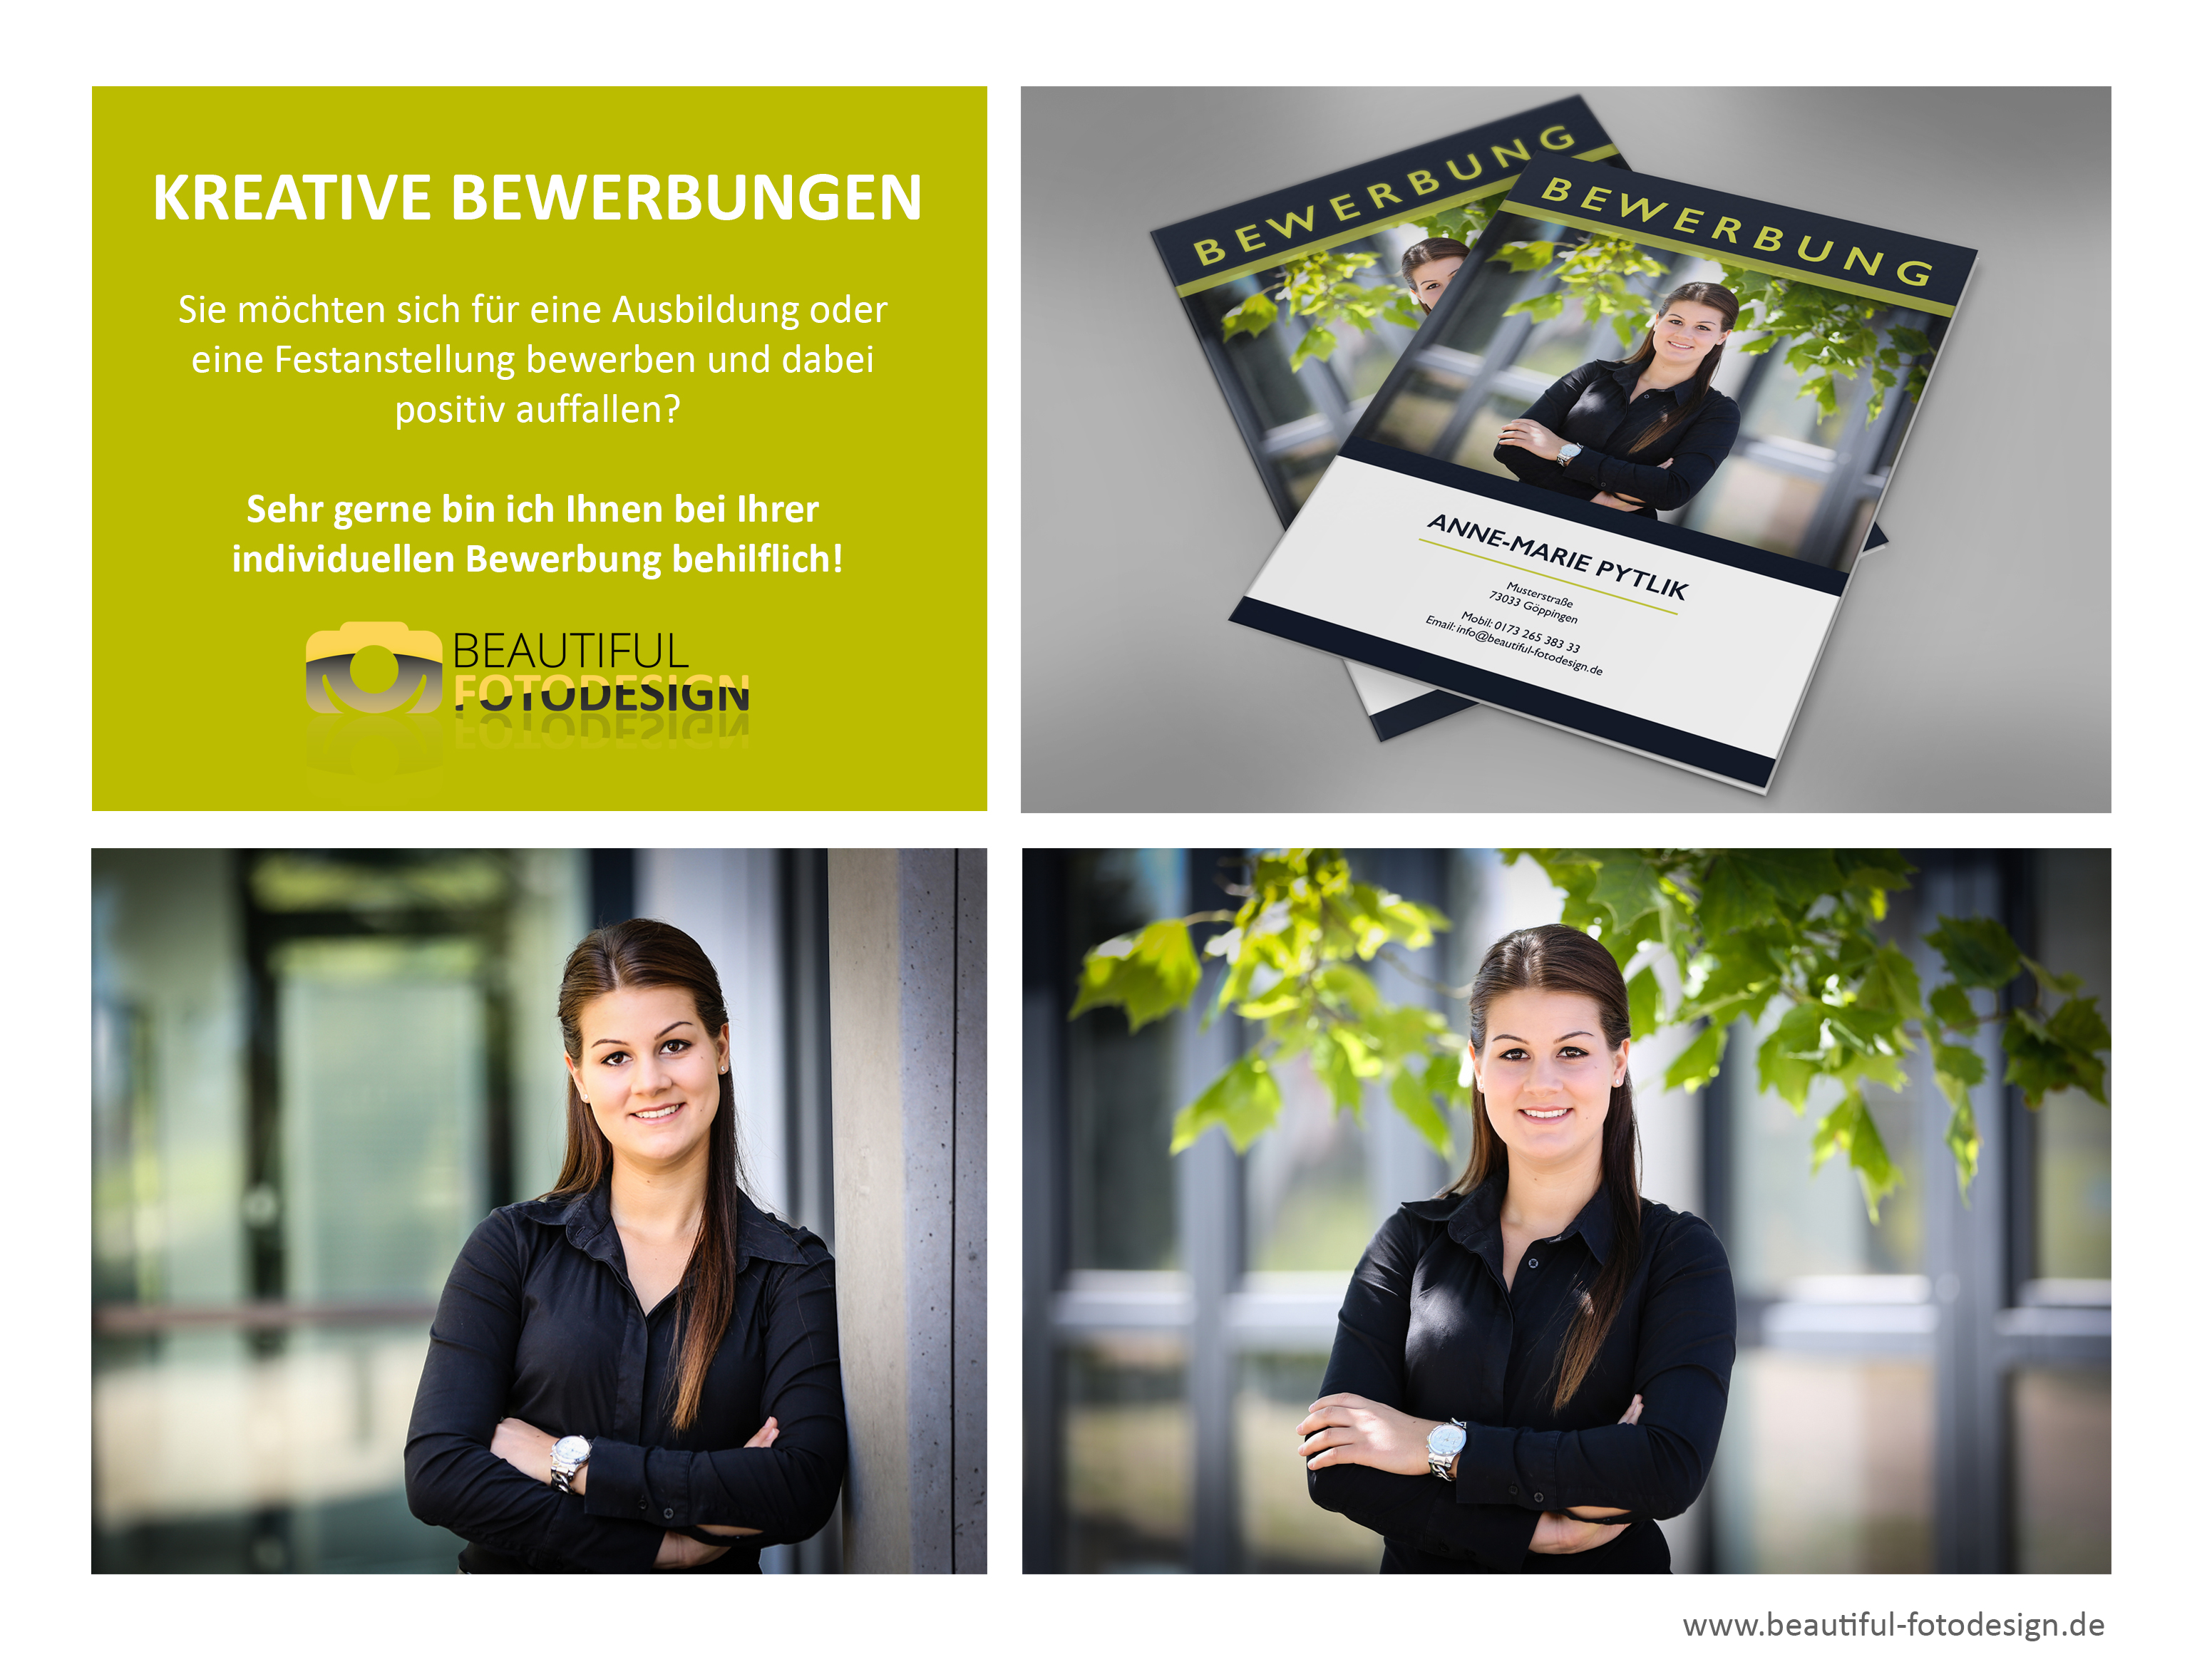 Kreative Bewerbungen - Beautiful Fotodesign